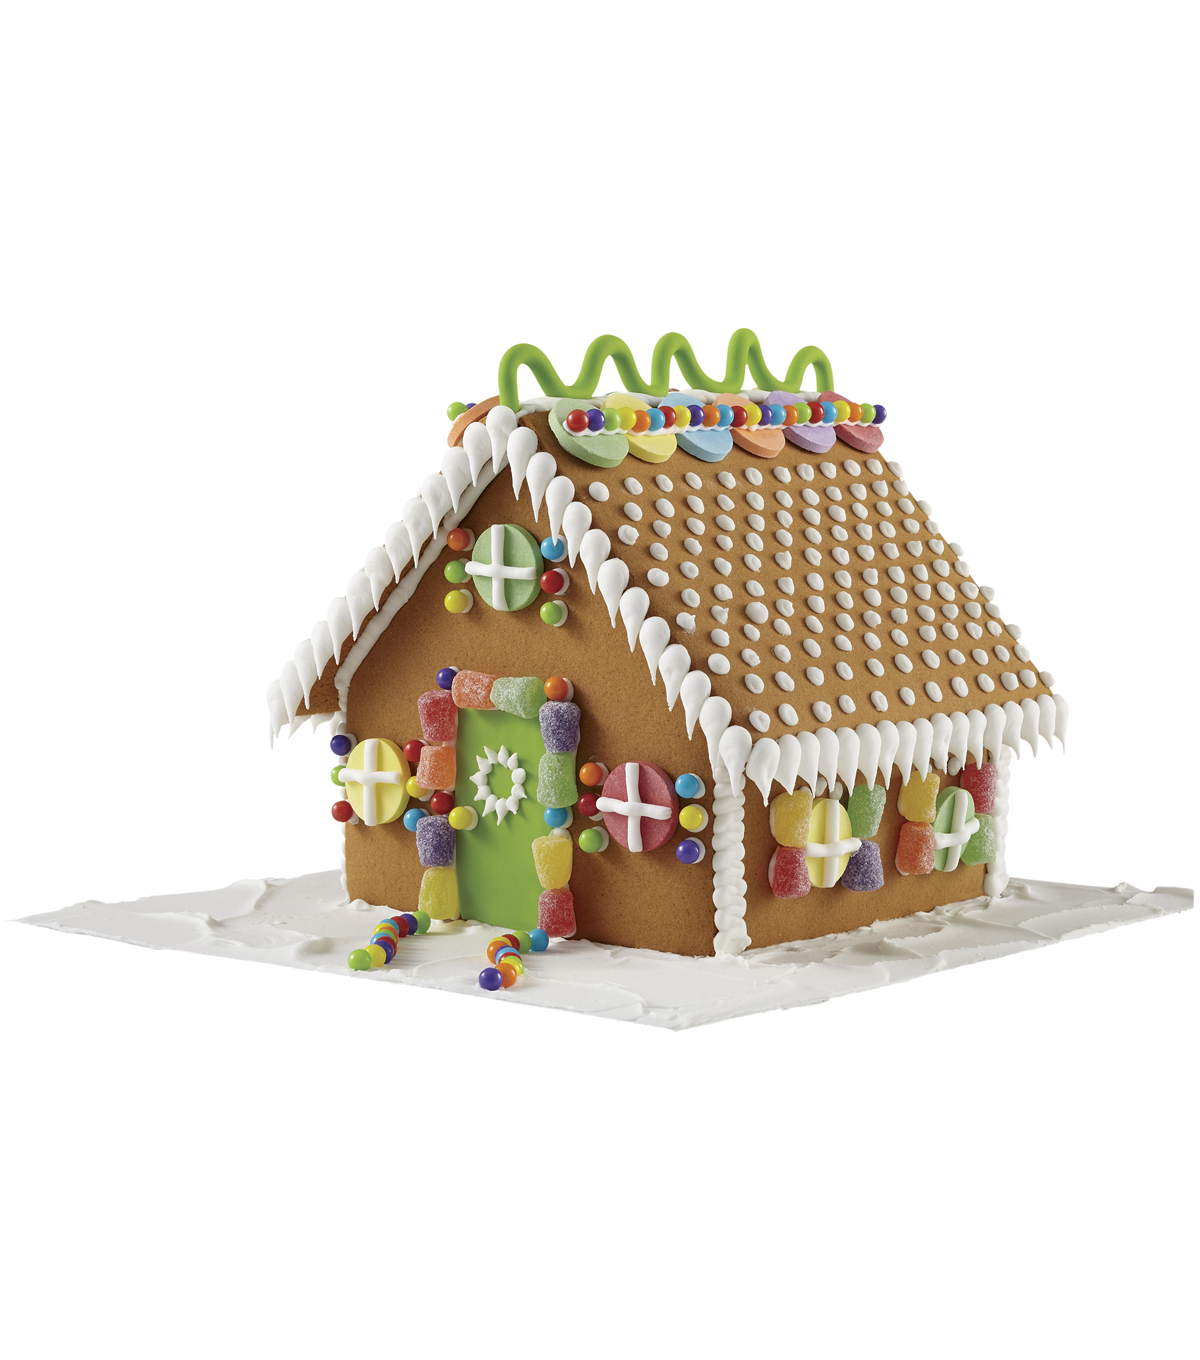 Wilton® Pre-Baked Gingerbread House Decorating Kit